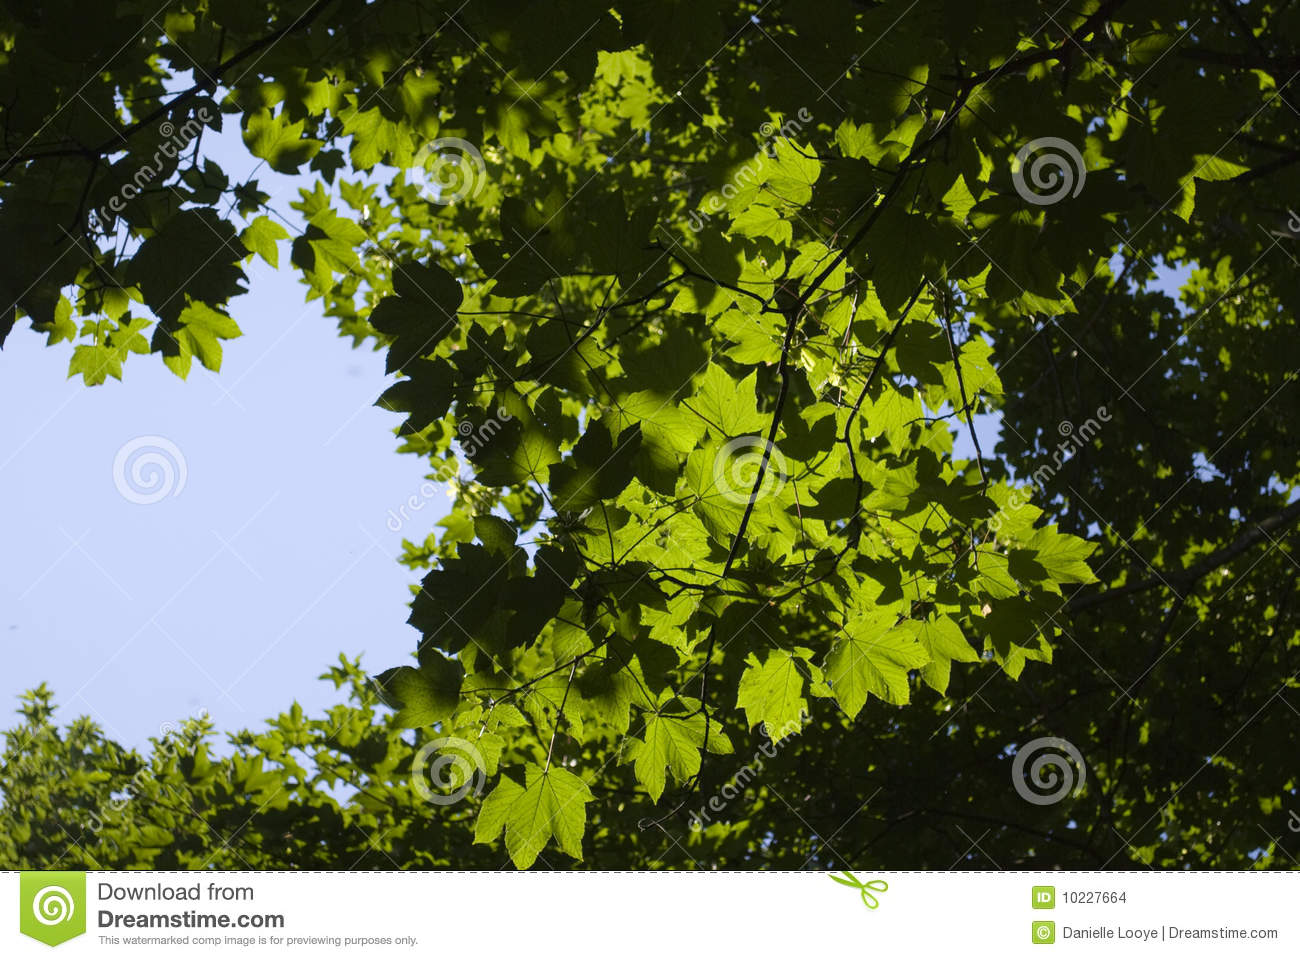 Leaves through the sky